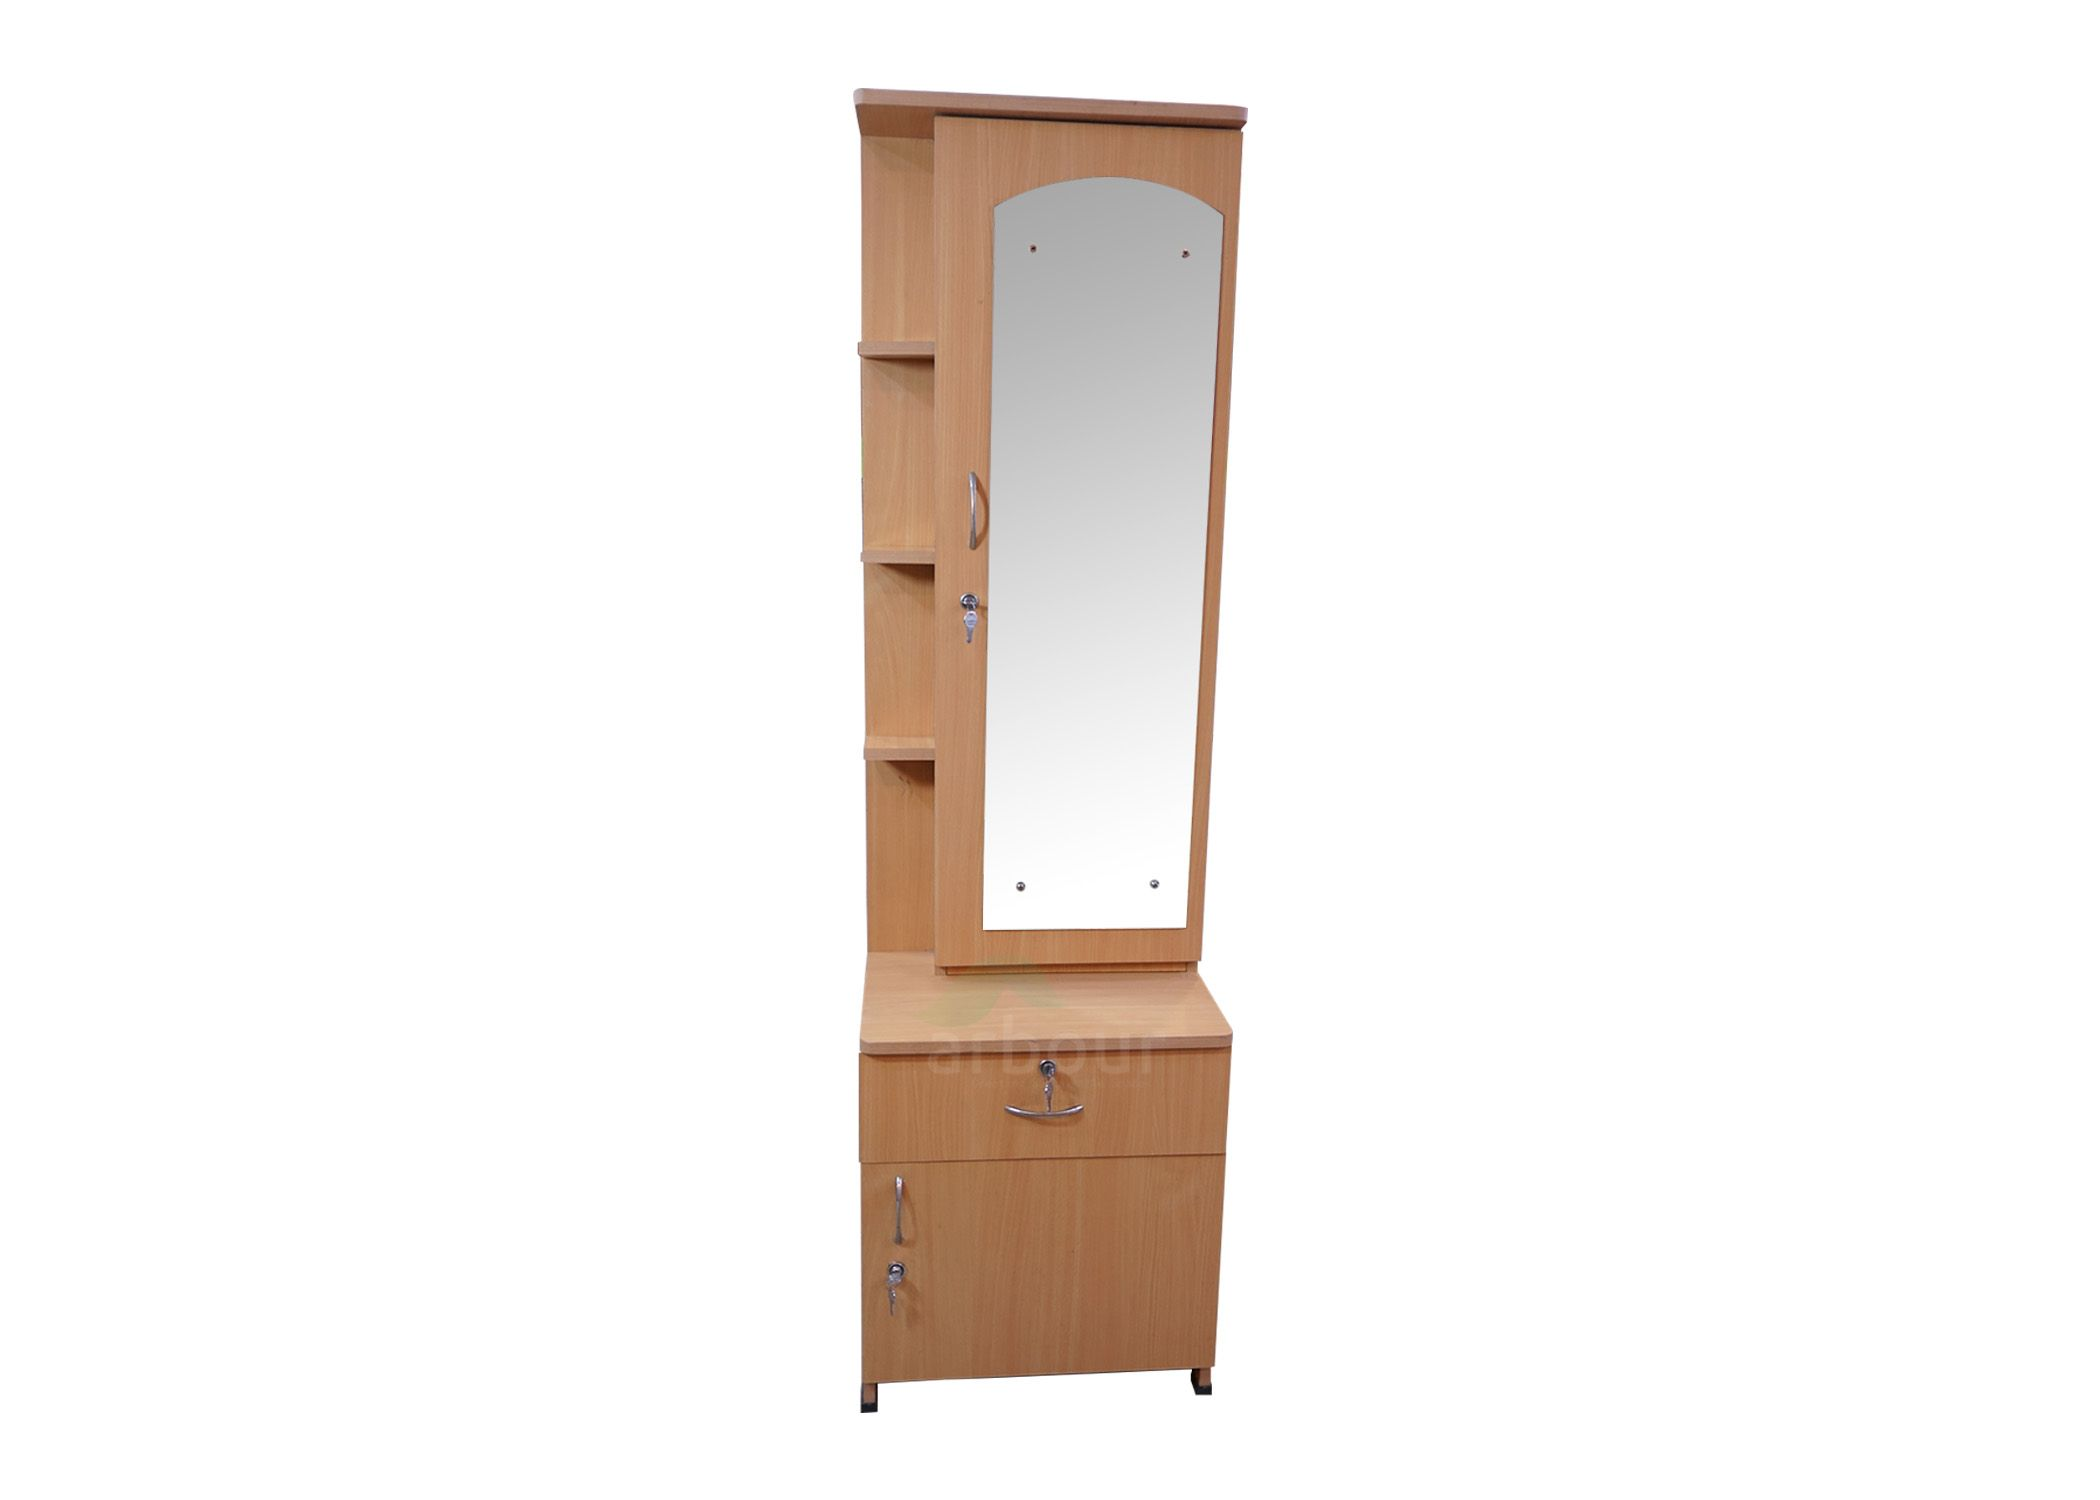 Buy Cheap Dressing Table With Mirror Dressing Table With Drawer And Dressing Table With Storage Online F Dressing Table Storage Refurbished Chairs Used Chairs